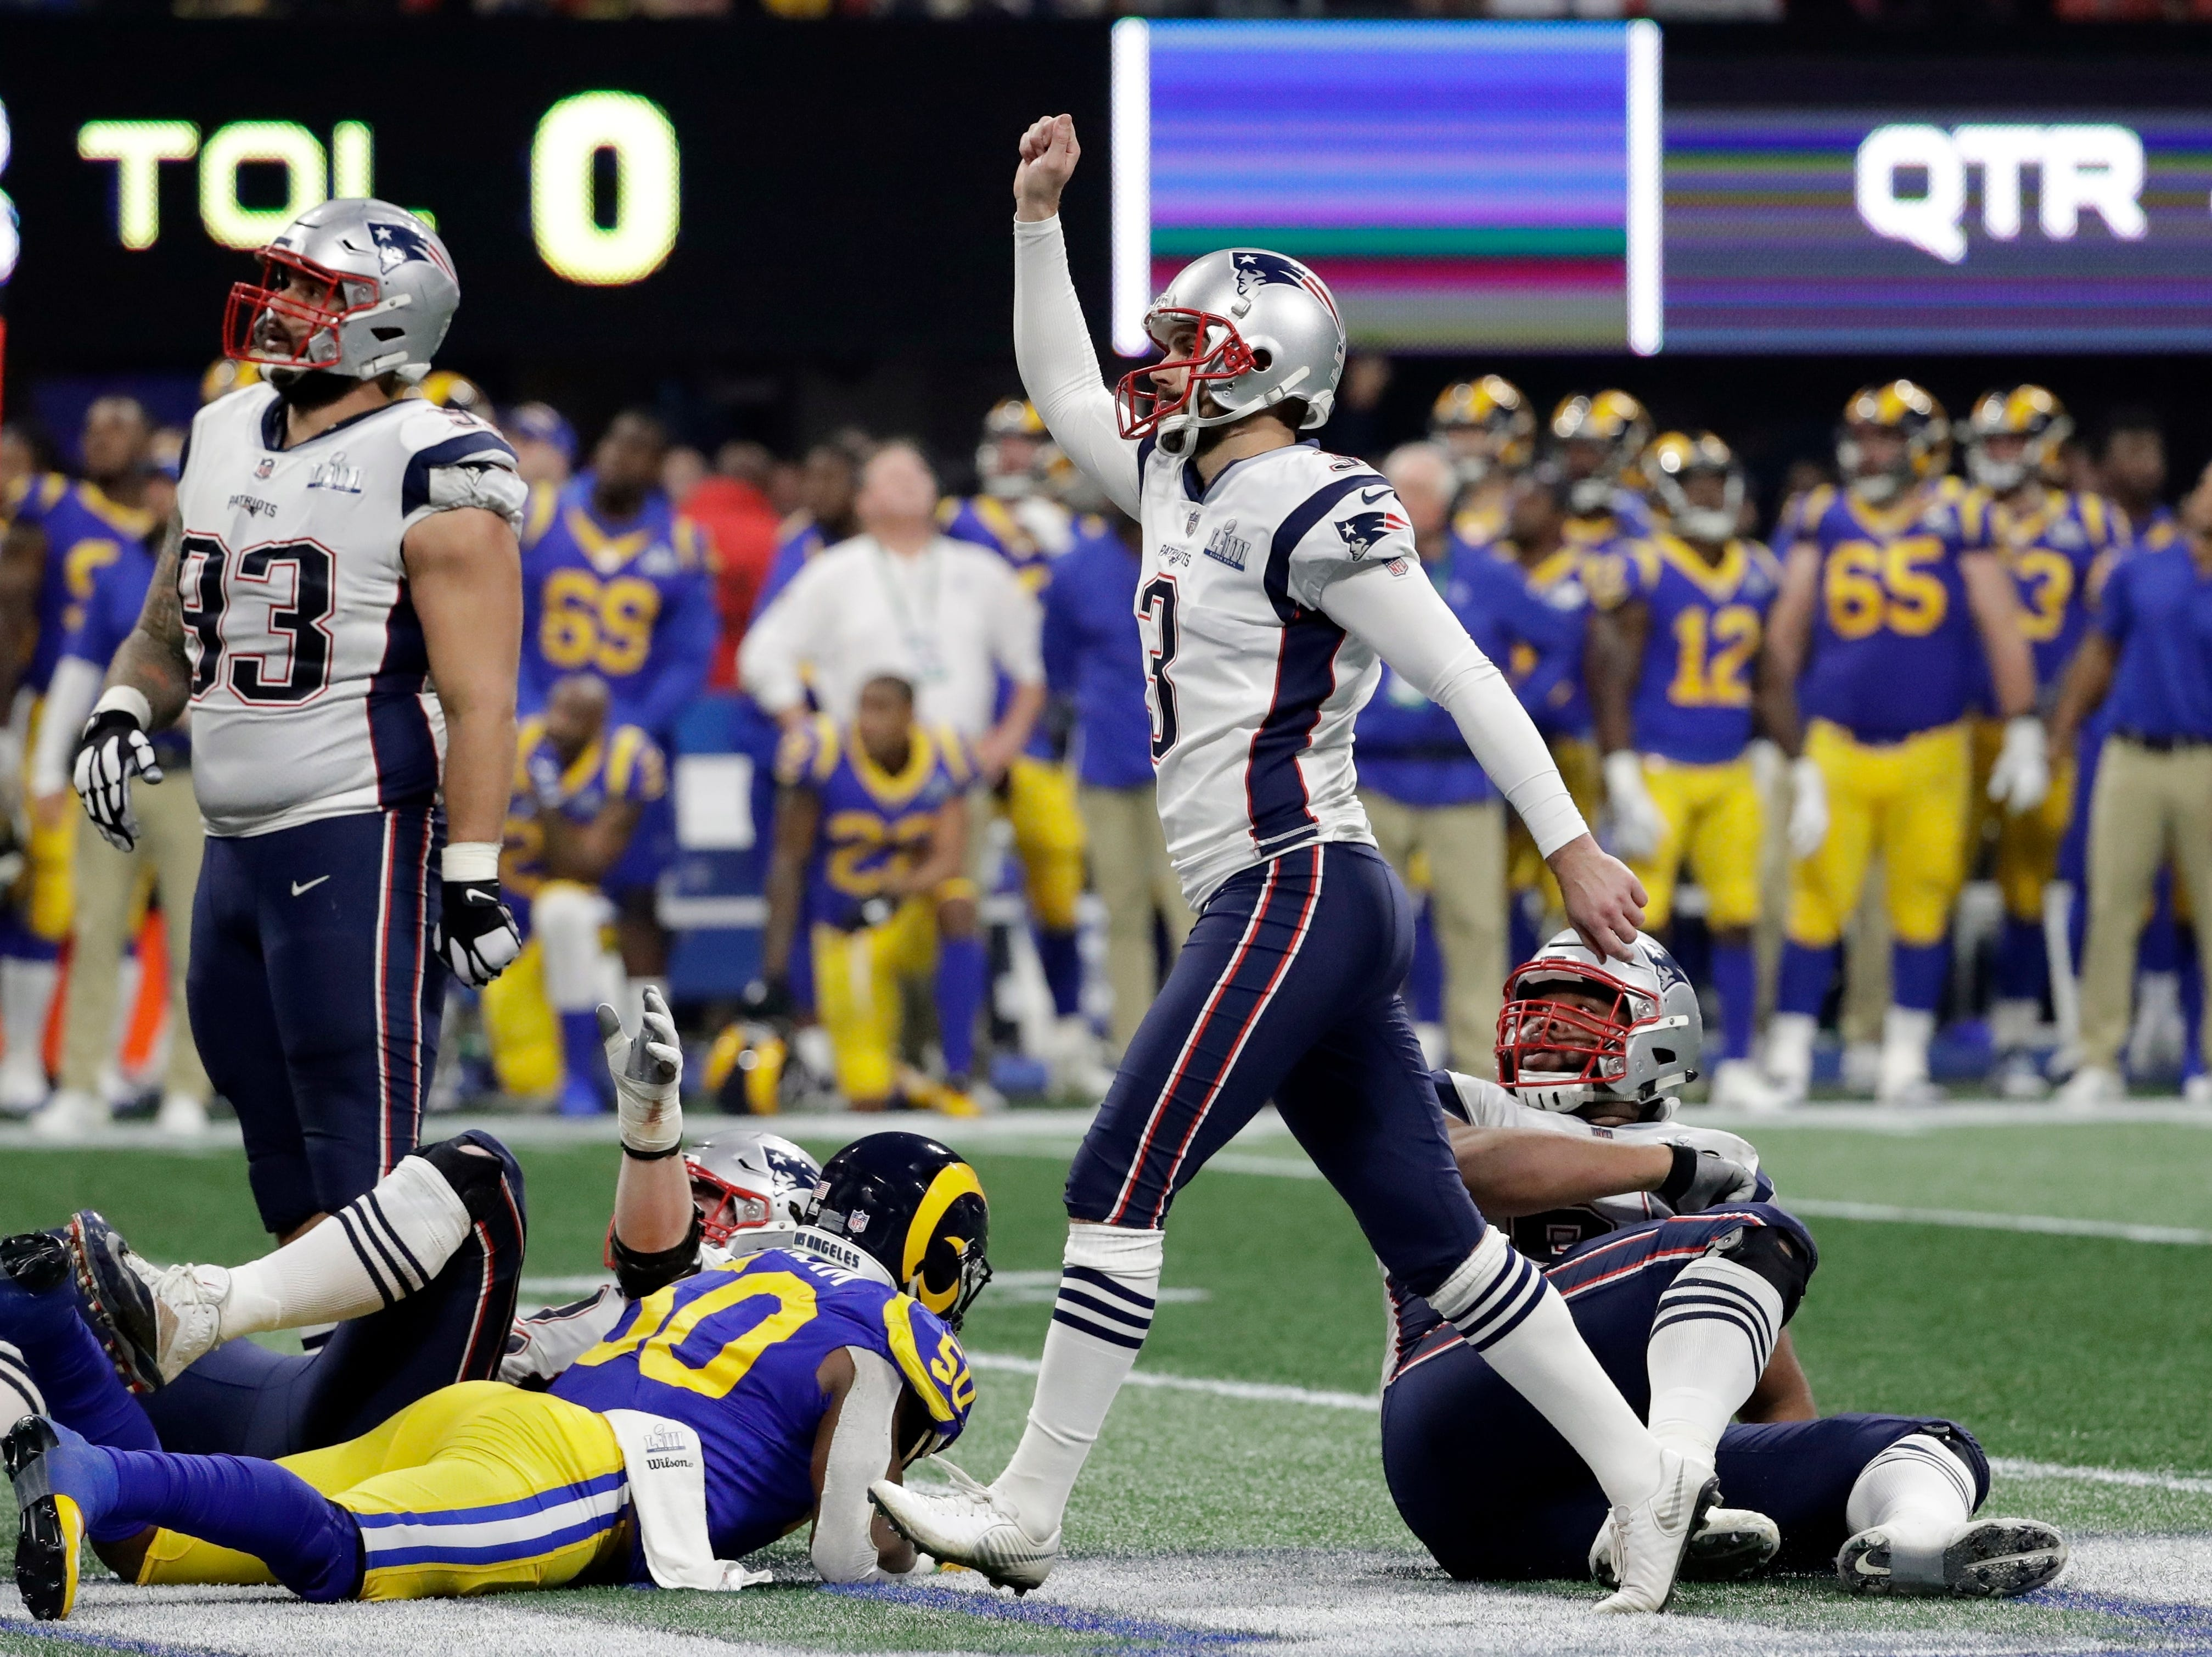 New England Patriots' Stephen Gostkowski (3) gestures after scoring a field goal, during the second half.